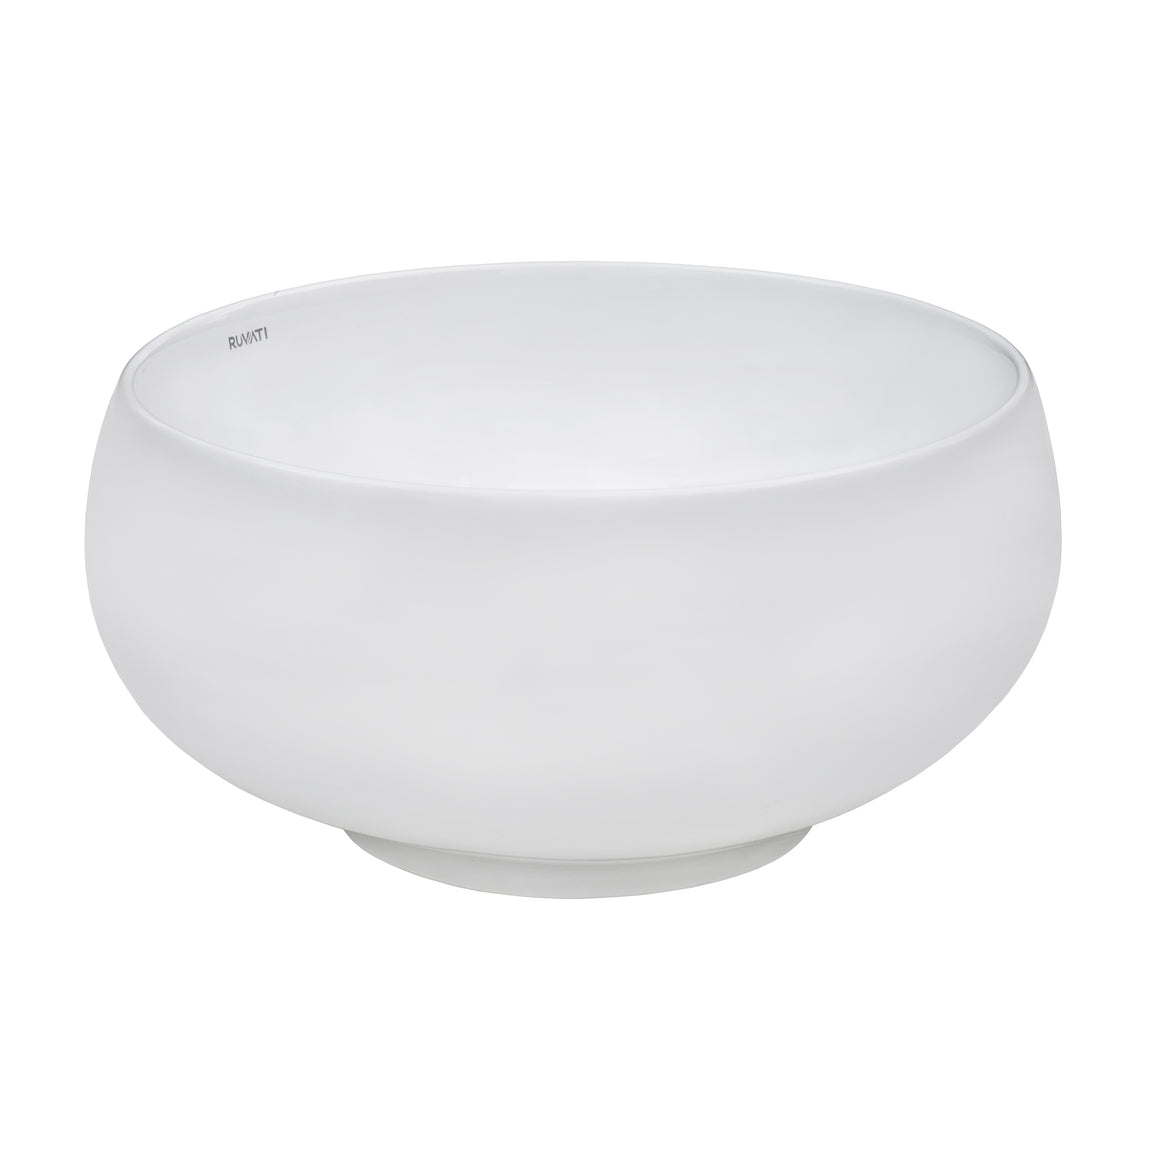 Ruvati 12 inch Bathroom Vessel Sink Round White Circular Above Counter Porcelain Ceramic